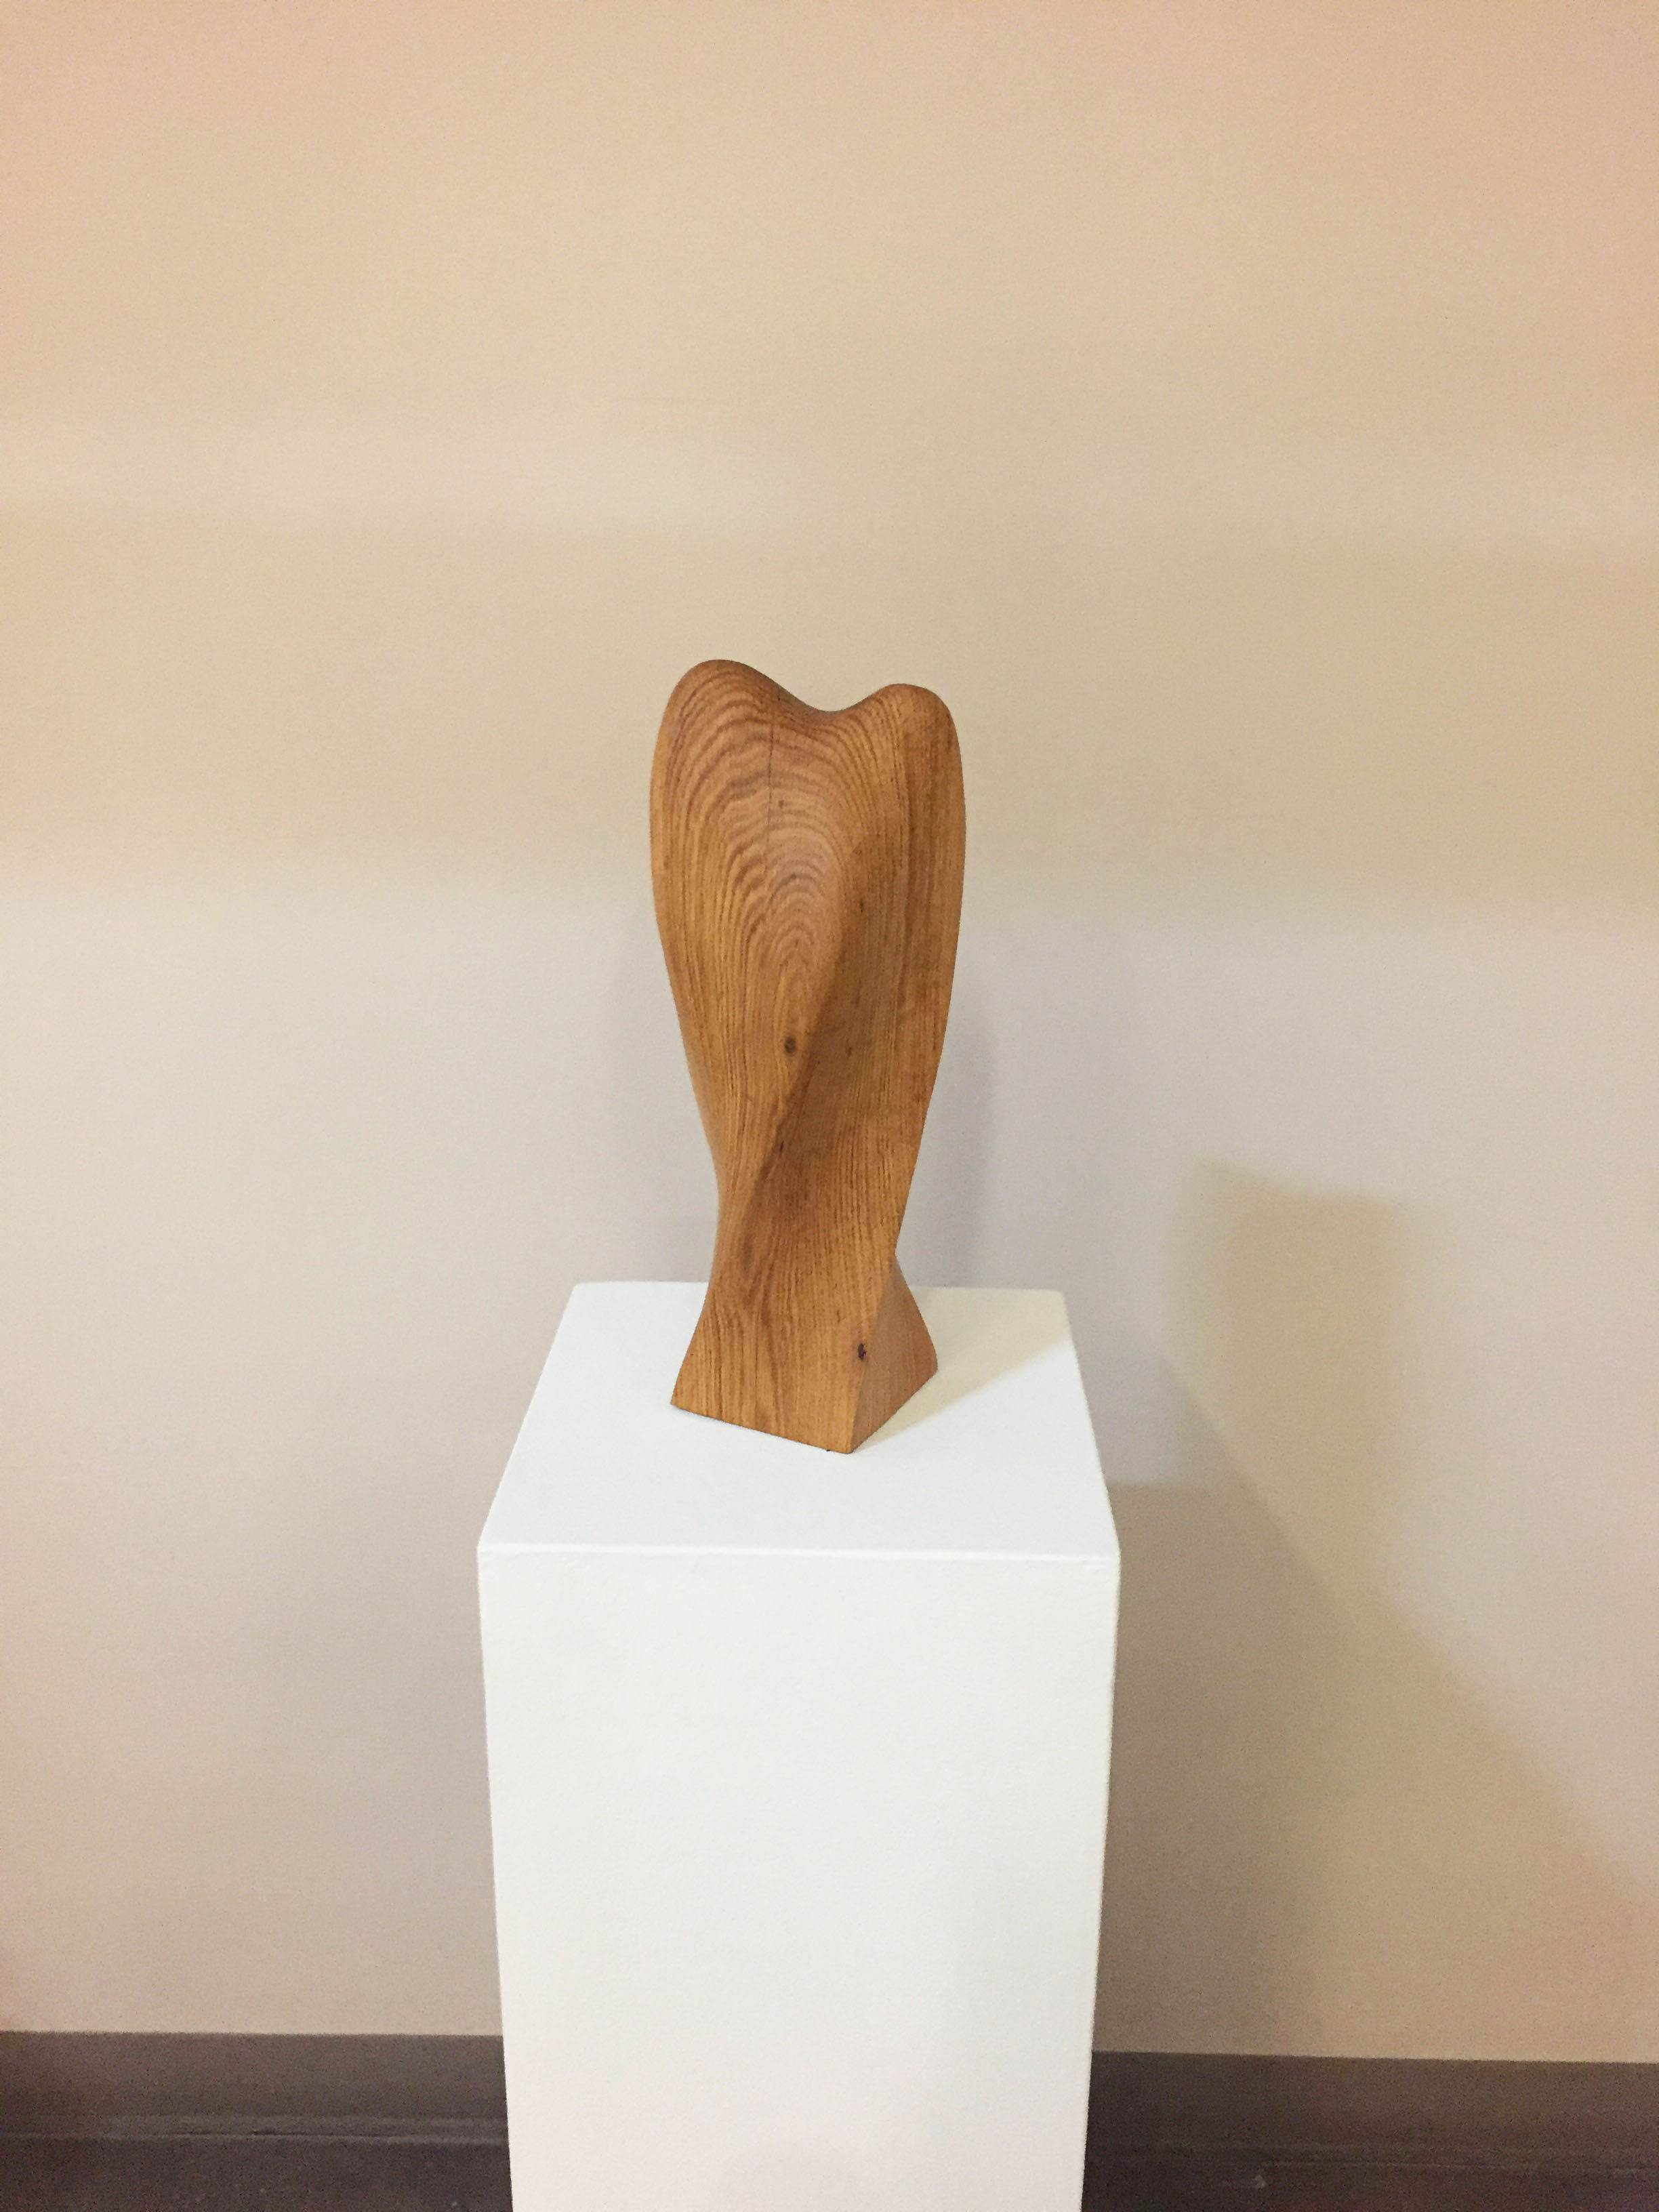 Smooth, winding, wooden sculpture sits as an object in the MSU Student Exhibition